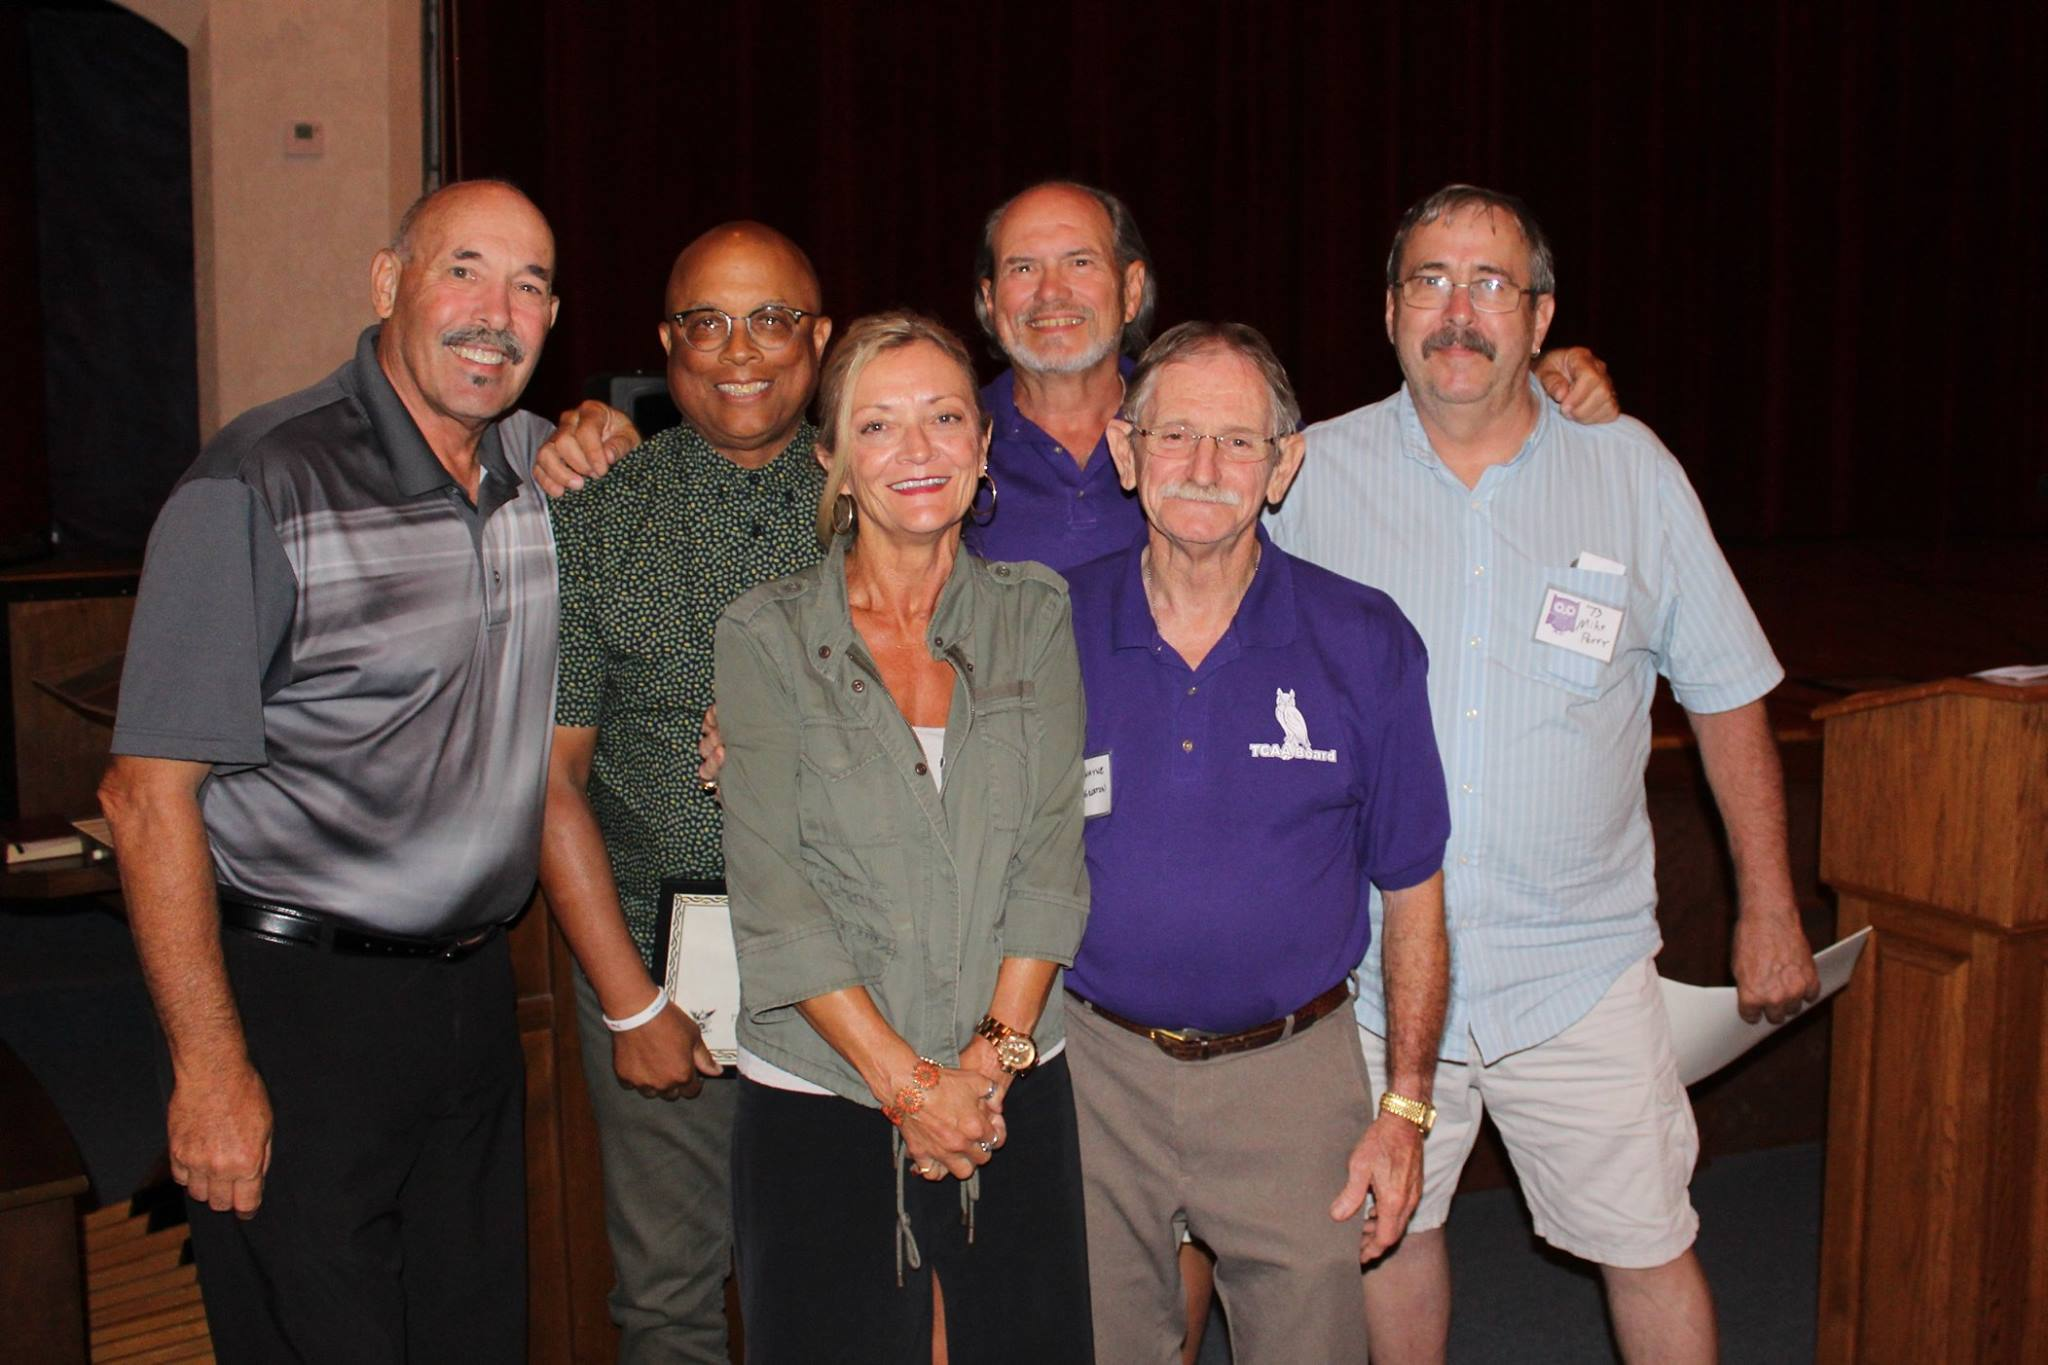 Mike Needleman Eleanor J. Shirley Dan Cox Wayne Gelston Fred Bridgewater and Mike Perry.jpg